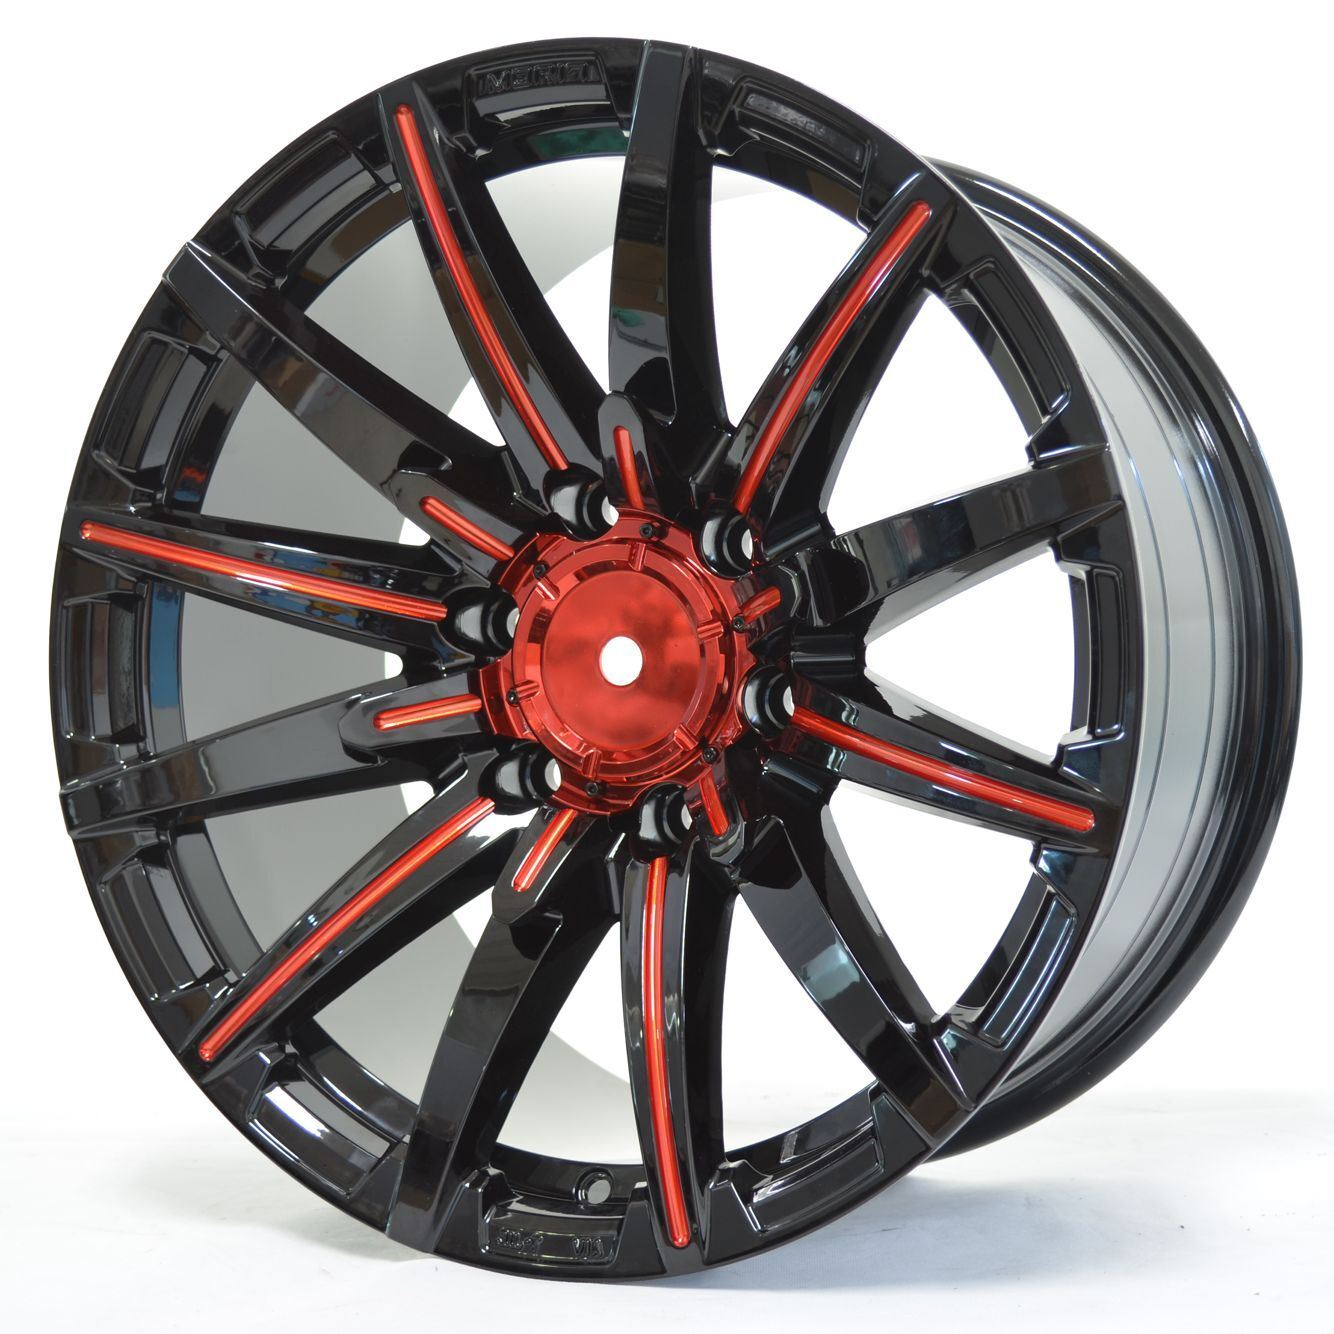 China Suv Aftermarket Alloy Wheel New 2019 18inch And 20inch China Aftermarket Alloy Wheel Alloy Wheel